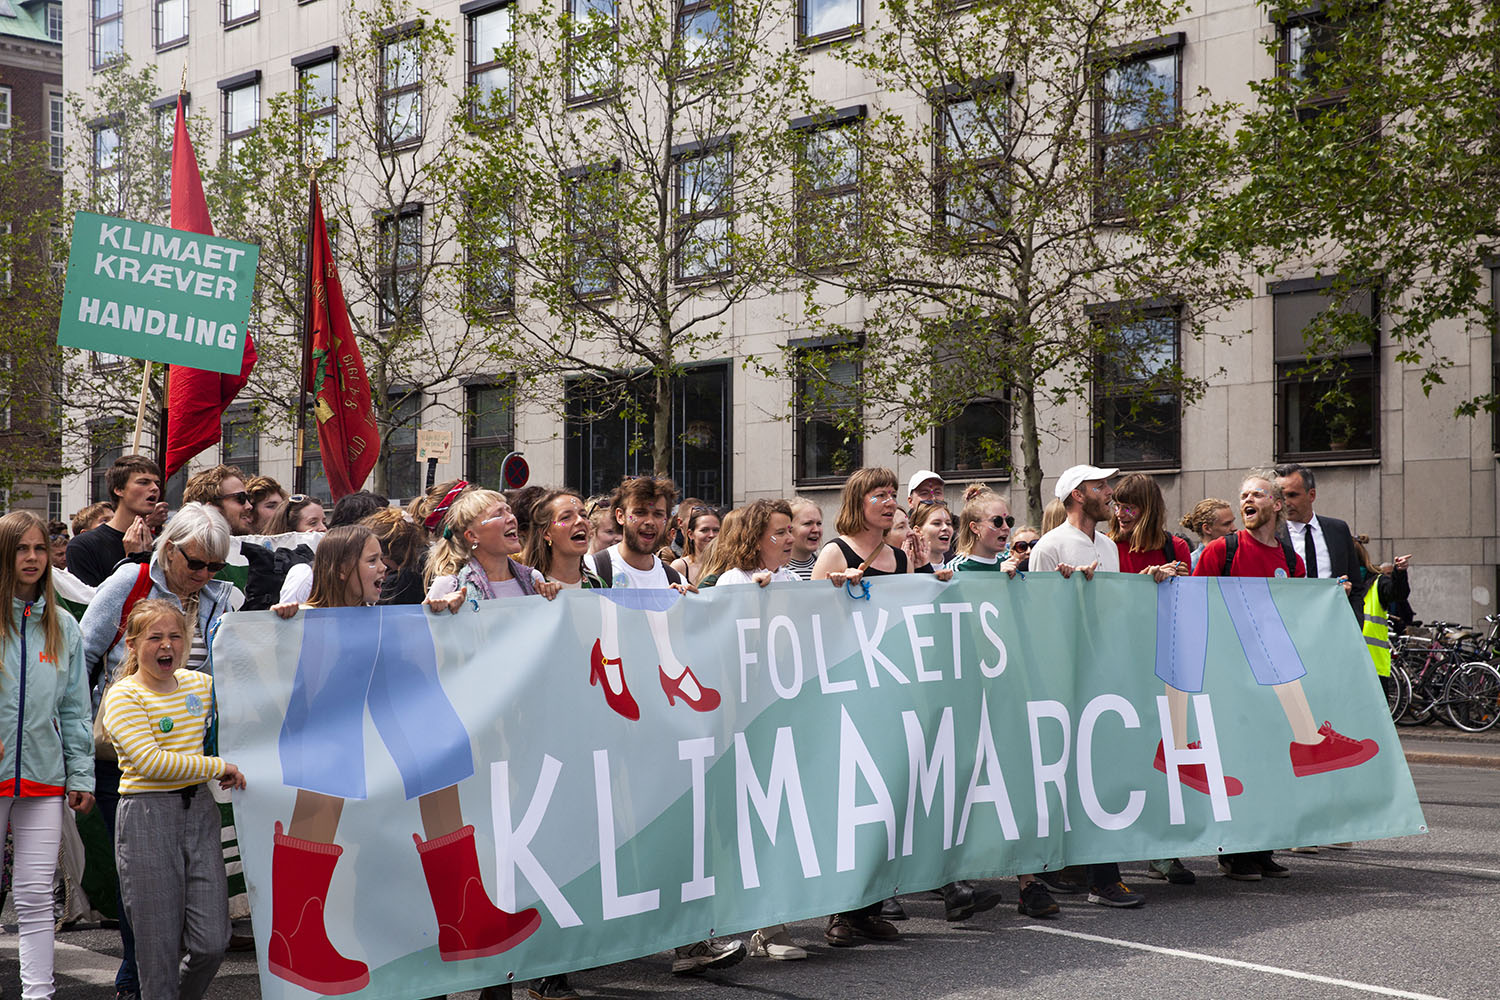 Klimamarch2019_HelenaLundquist_MG_8986_67.